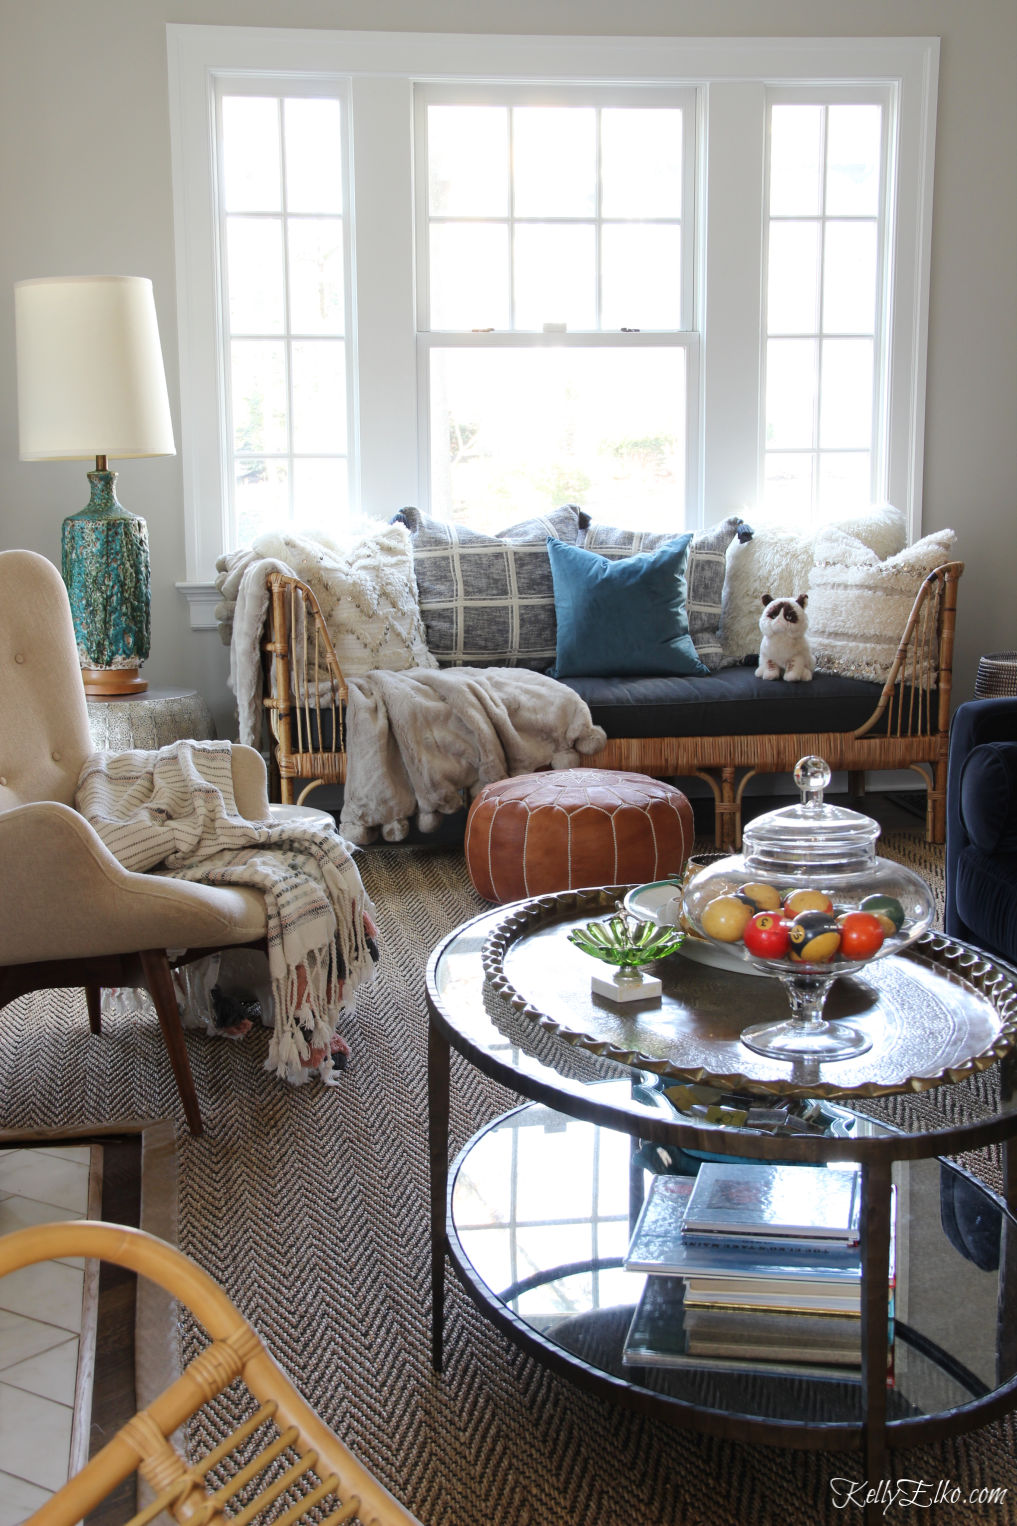 Love this eclectic, boho living room with a mix of vintage and new decor kellyelko.com #vintagedecor #bohodecor #rattanfurniture #vintagemodern #interiordesign #homedecor #livingroomdecor #livingroomfurniture #furnitureplacement #kellyelko